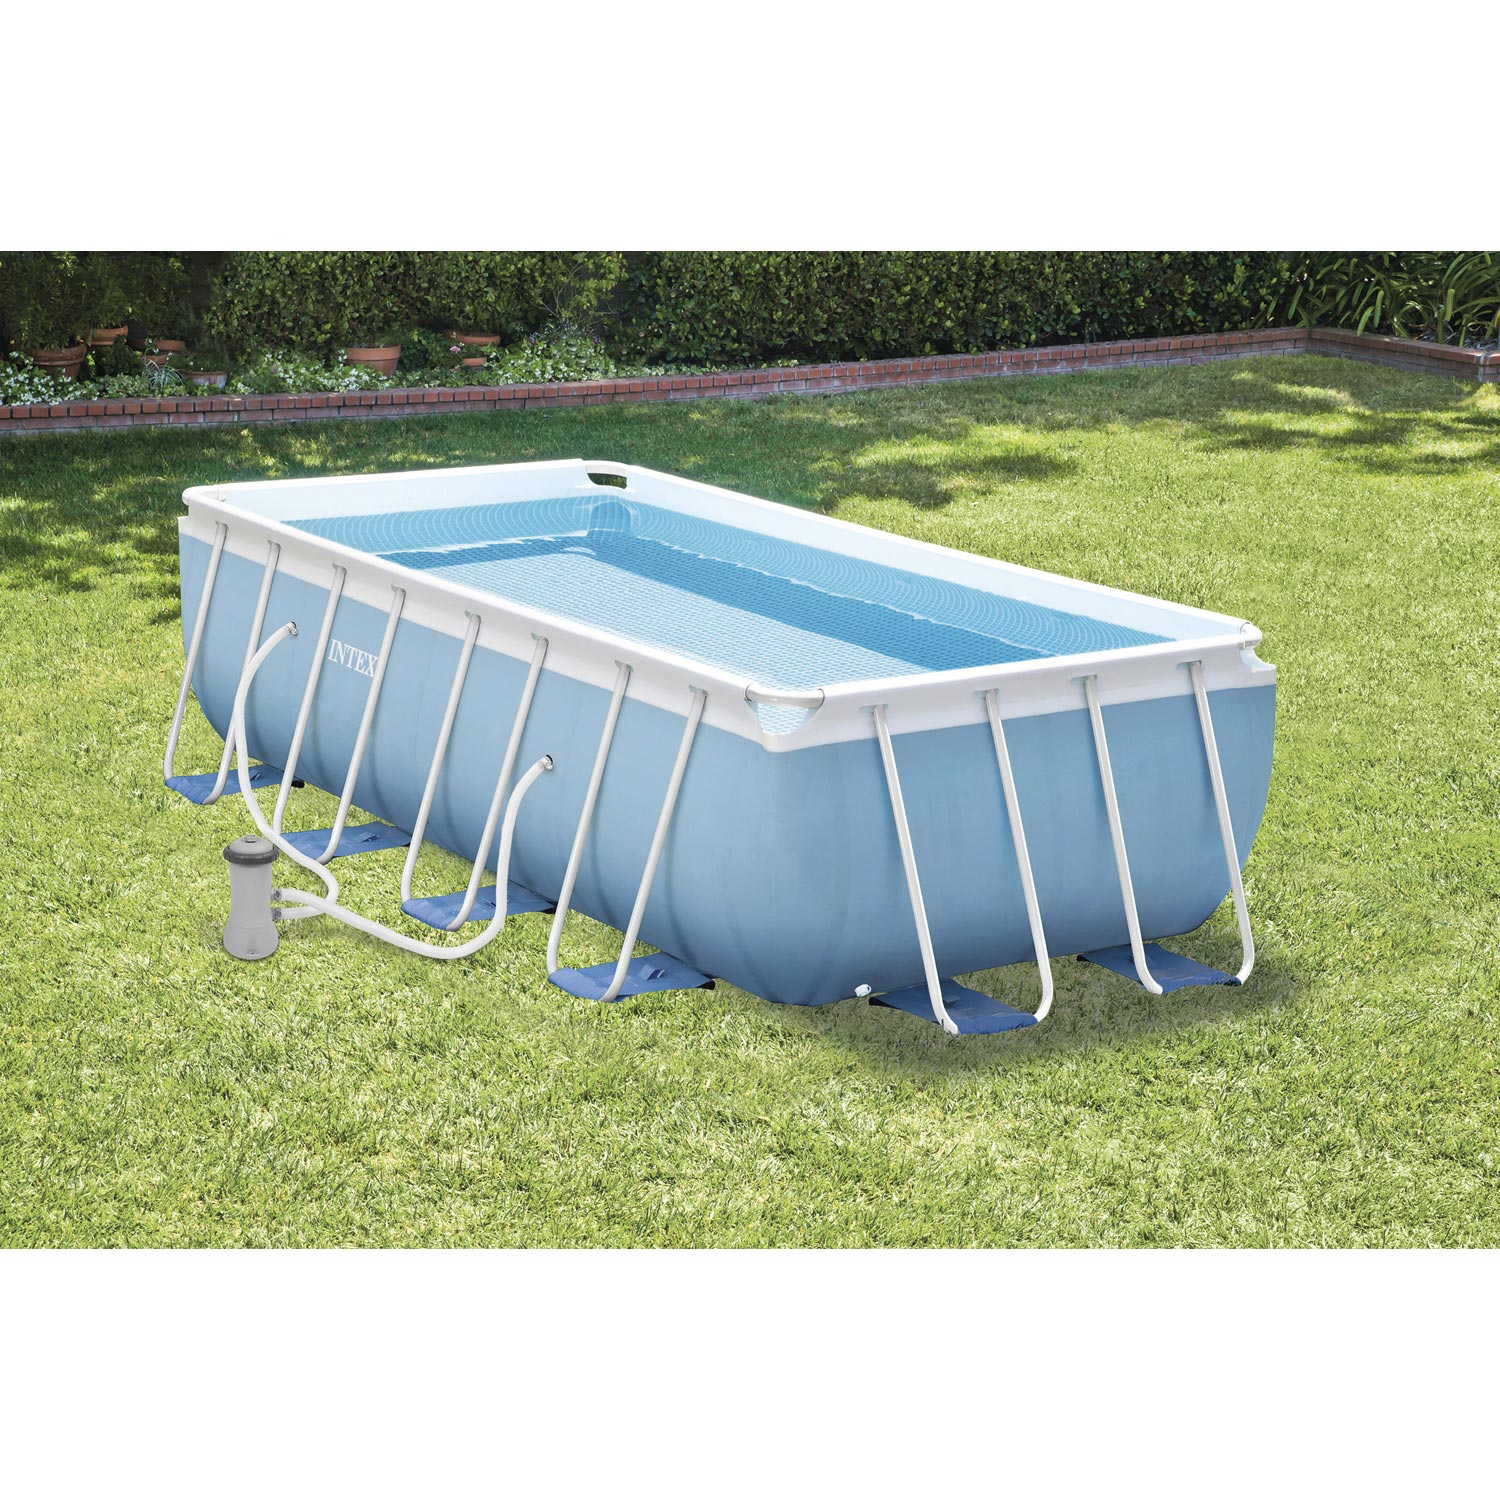 Piscine hors sol autoportante tubulaire prism frame intex for Tole piscine hors sol